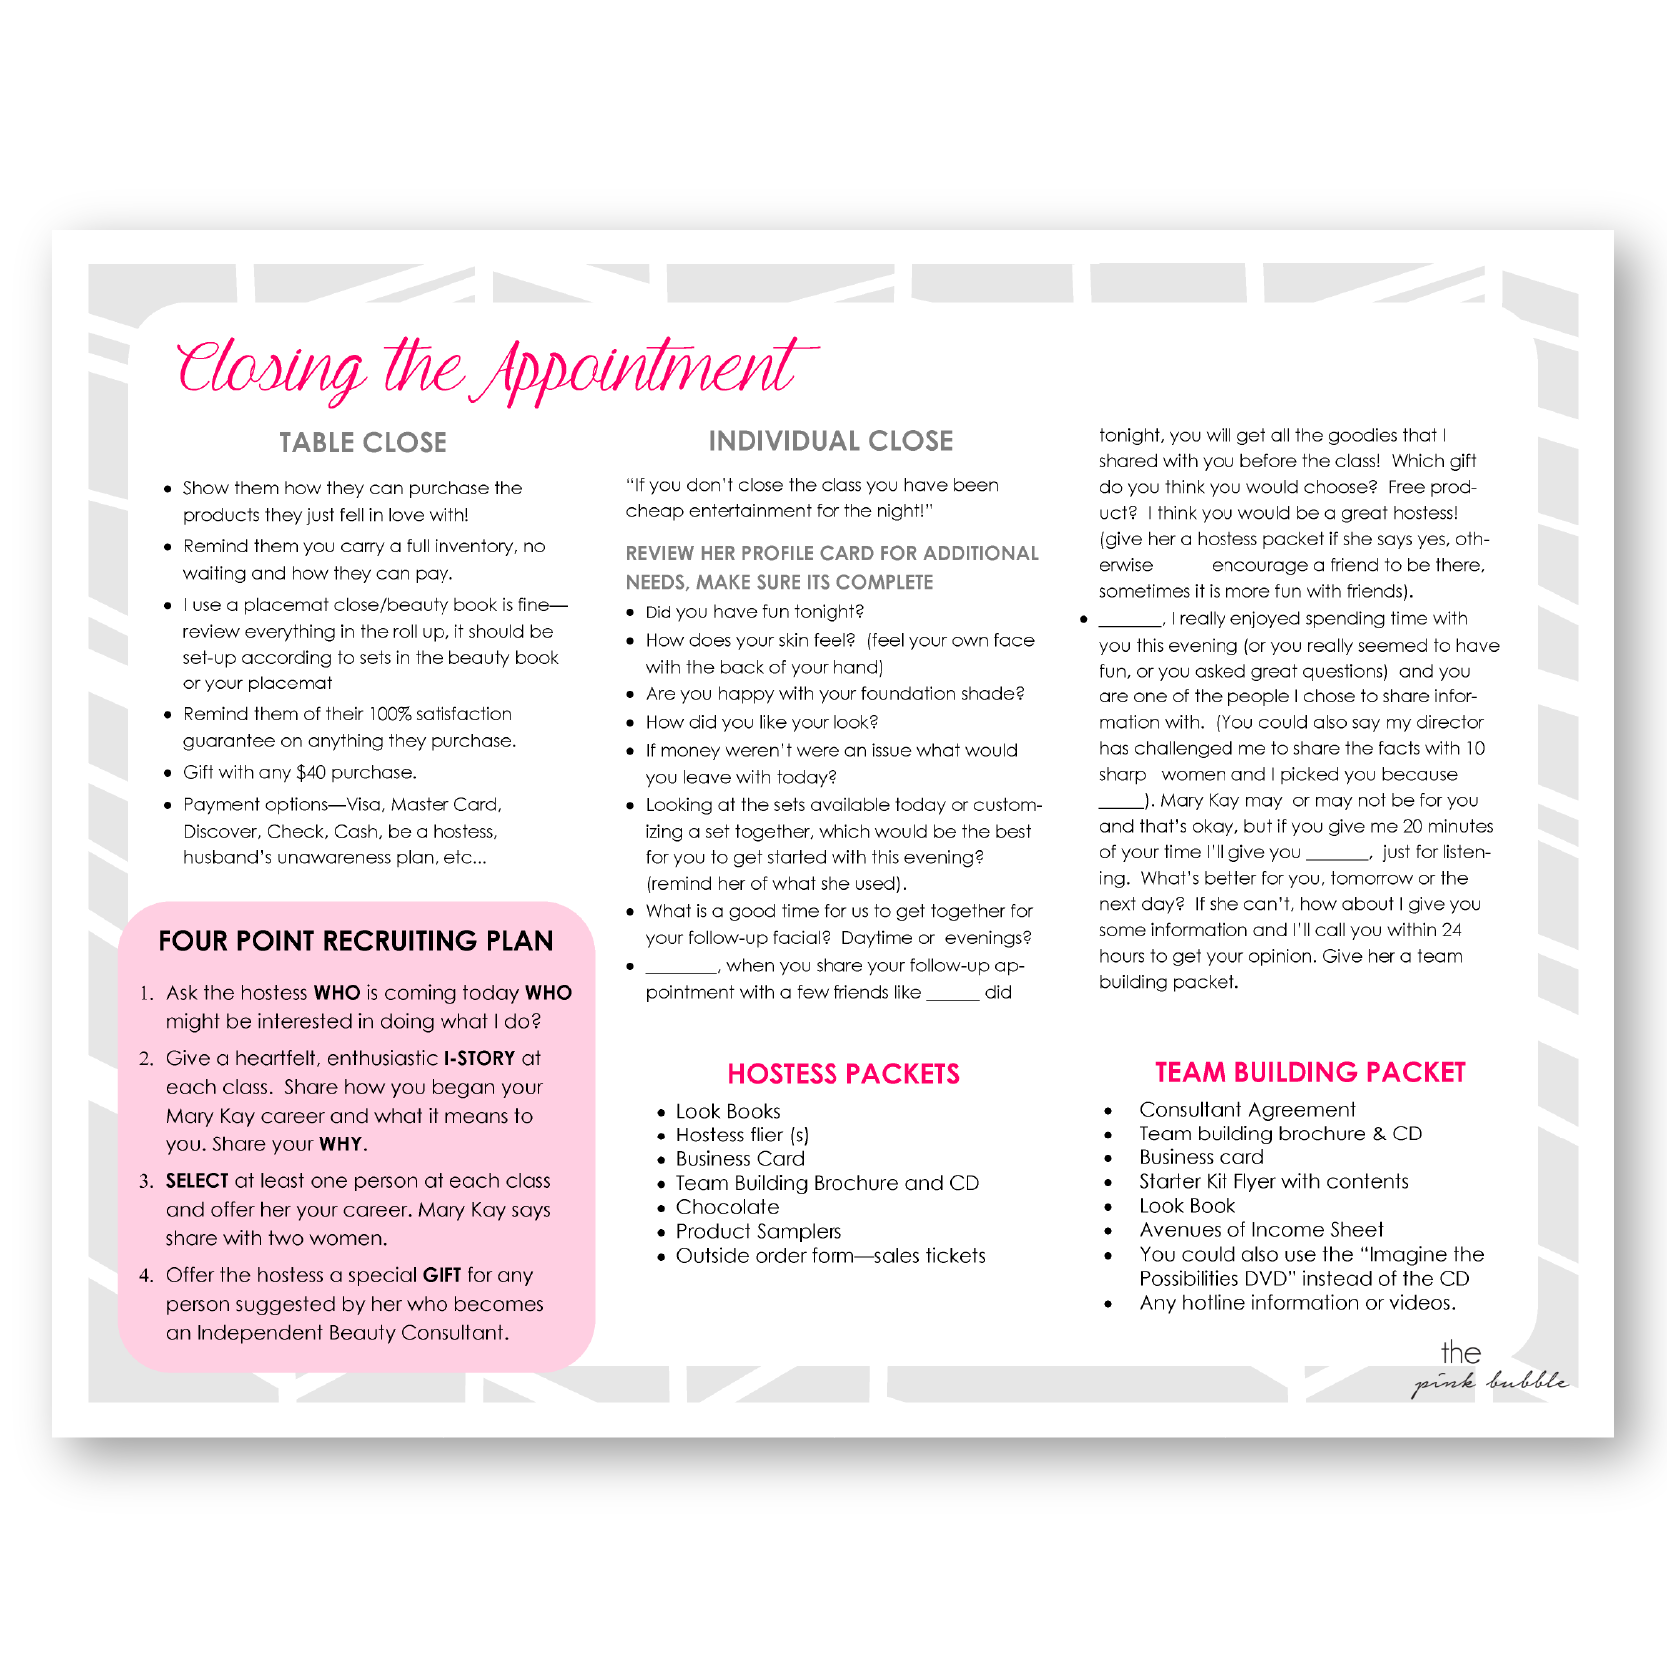 Mary Kay Pink Marketing Half Sheets Find It At WwwThepinkbubble